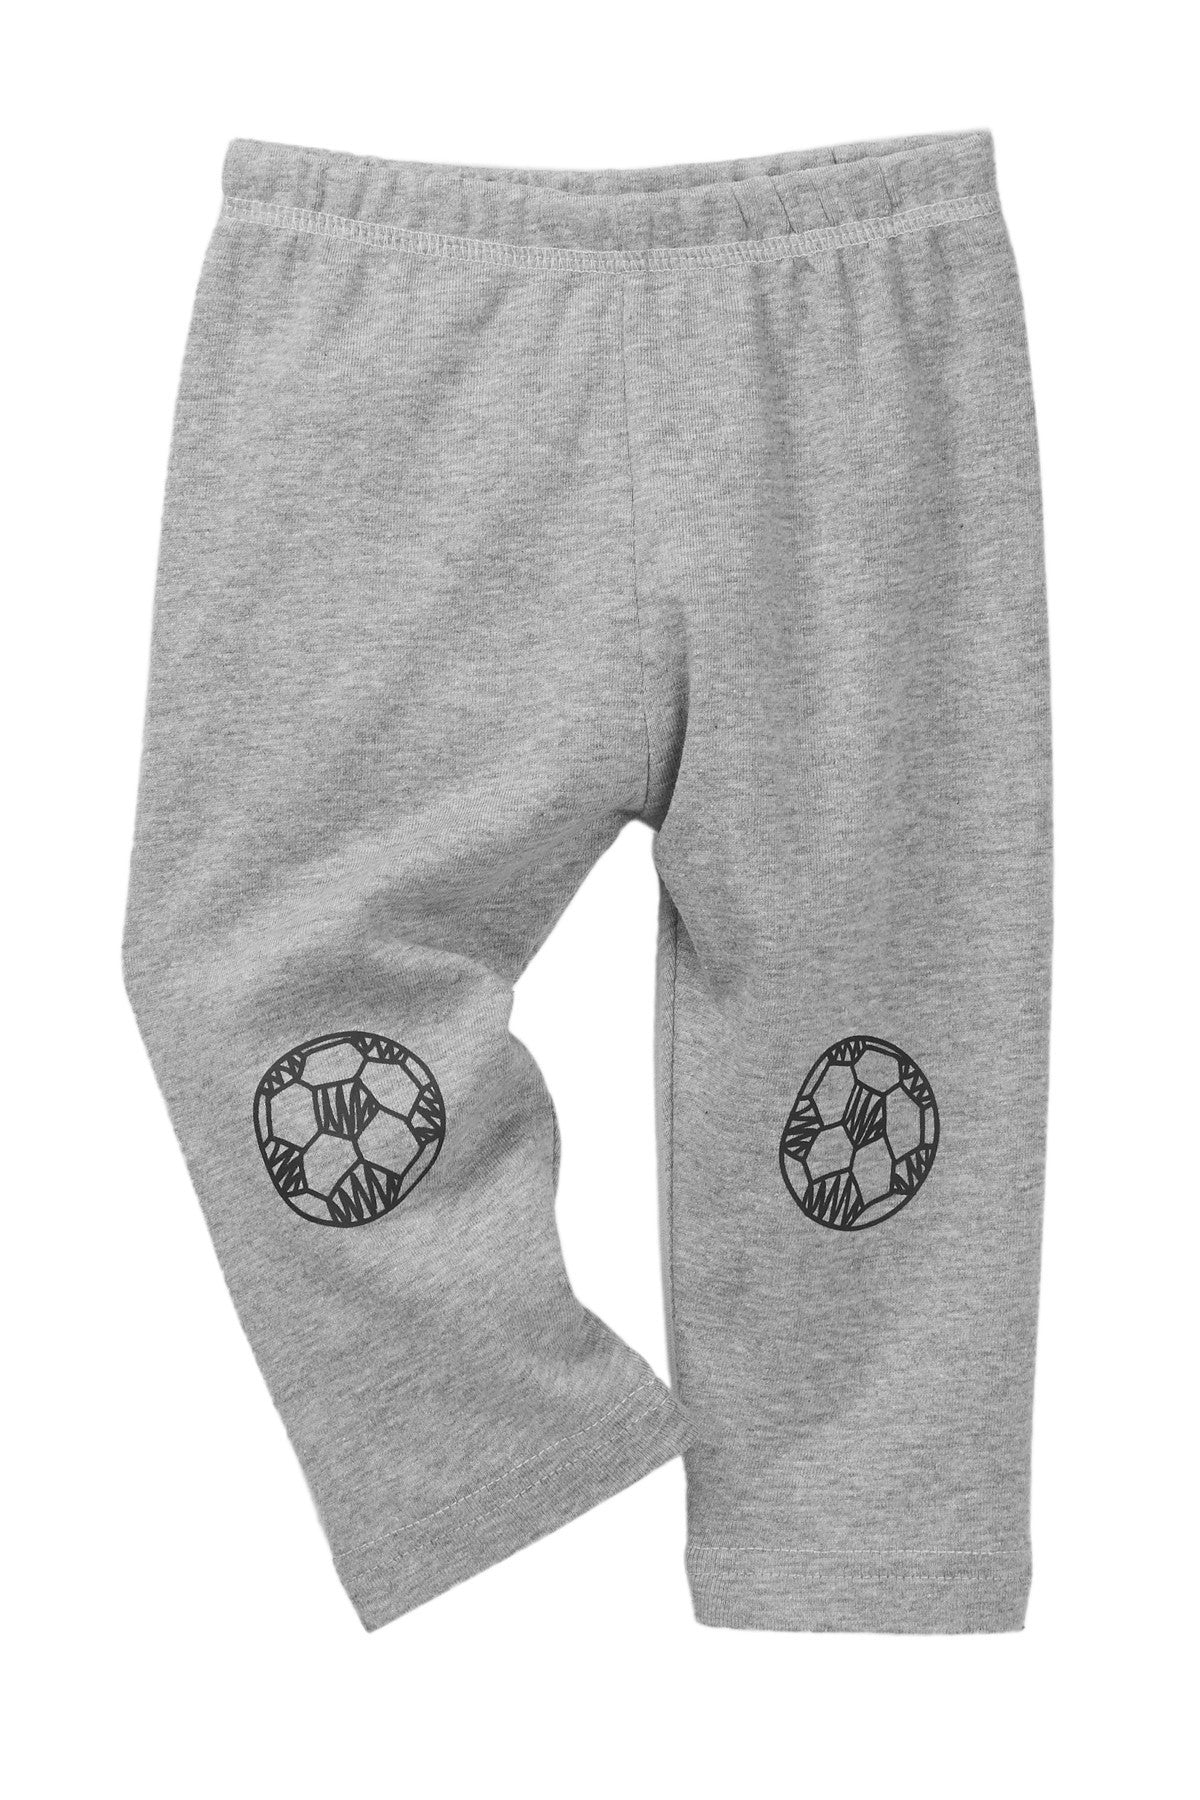 Soccer unisex leggings (additional colors available!)